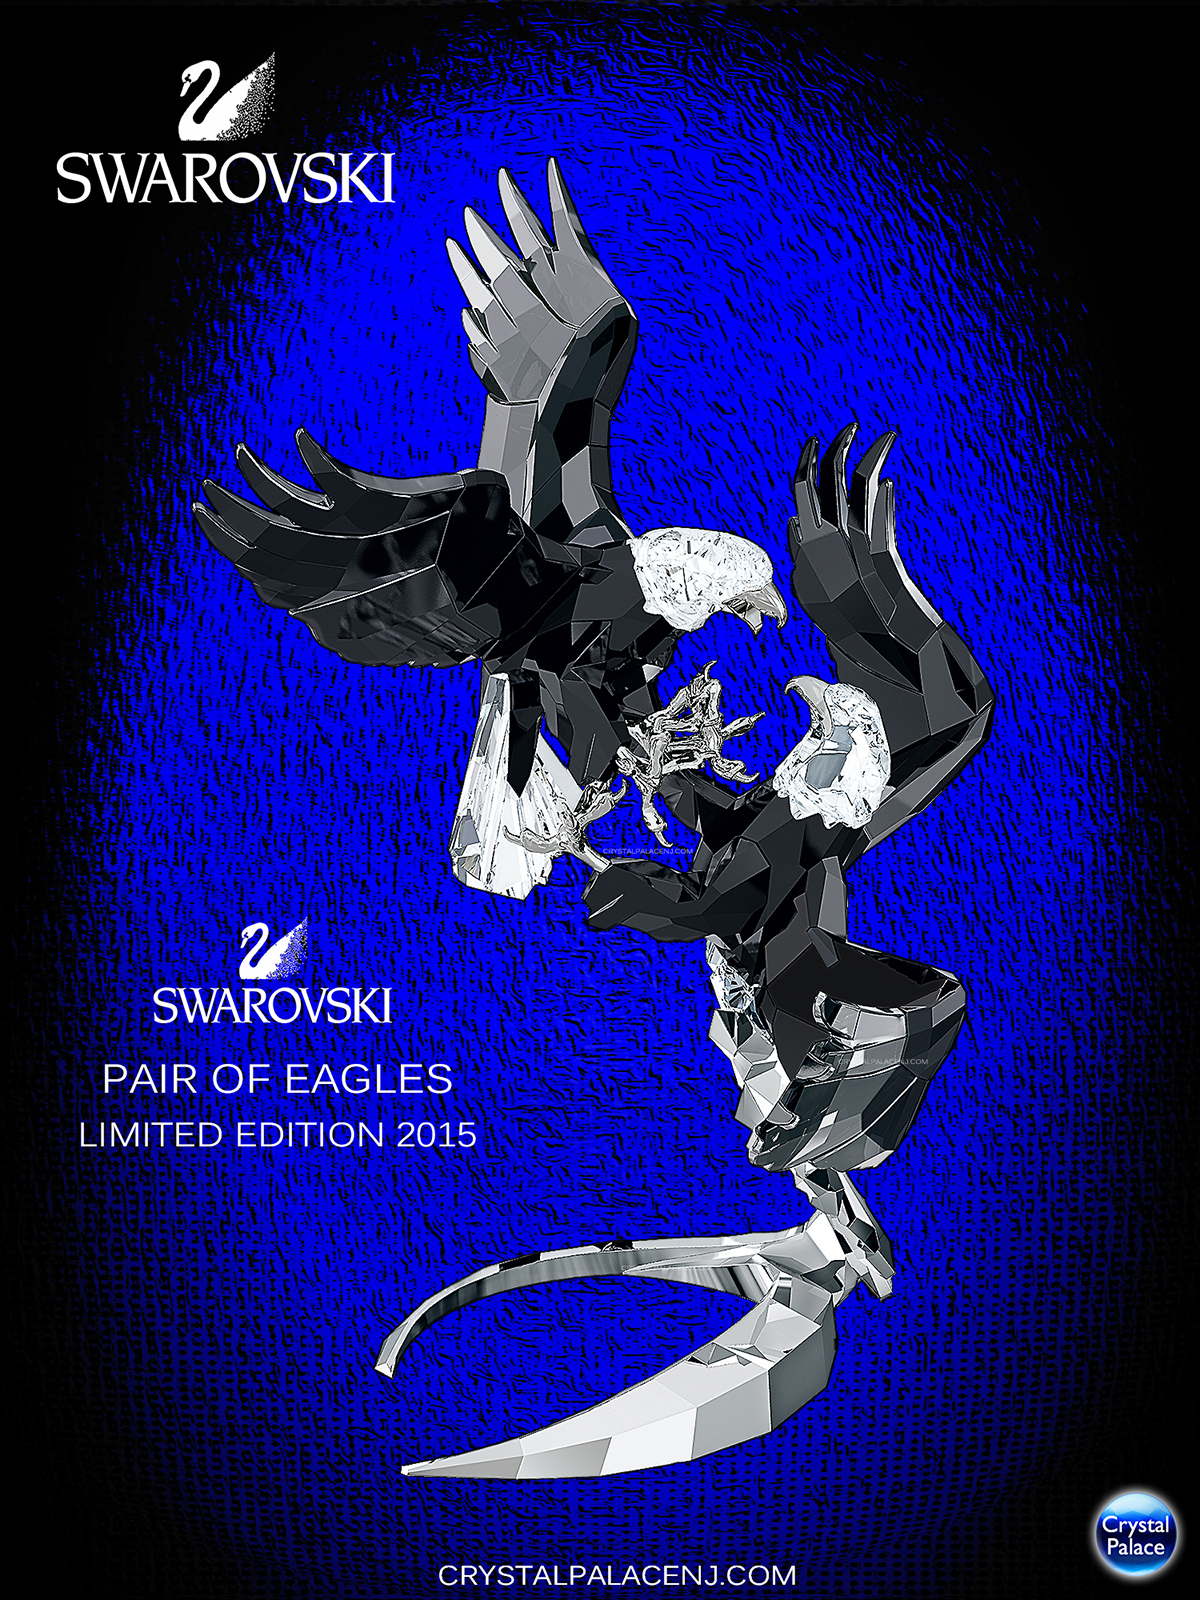 5063130 Swarovski Pair of Eagles Limited Edition 2015, 120th Anniversary Eagles